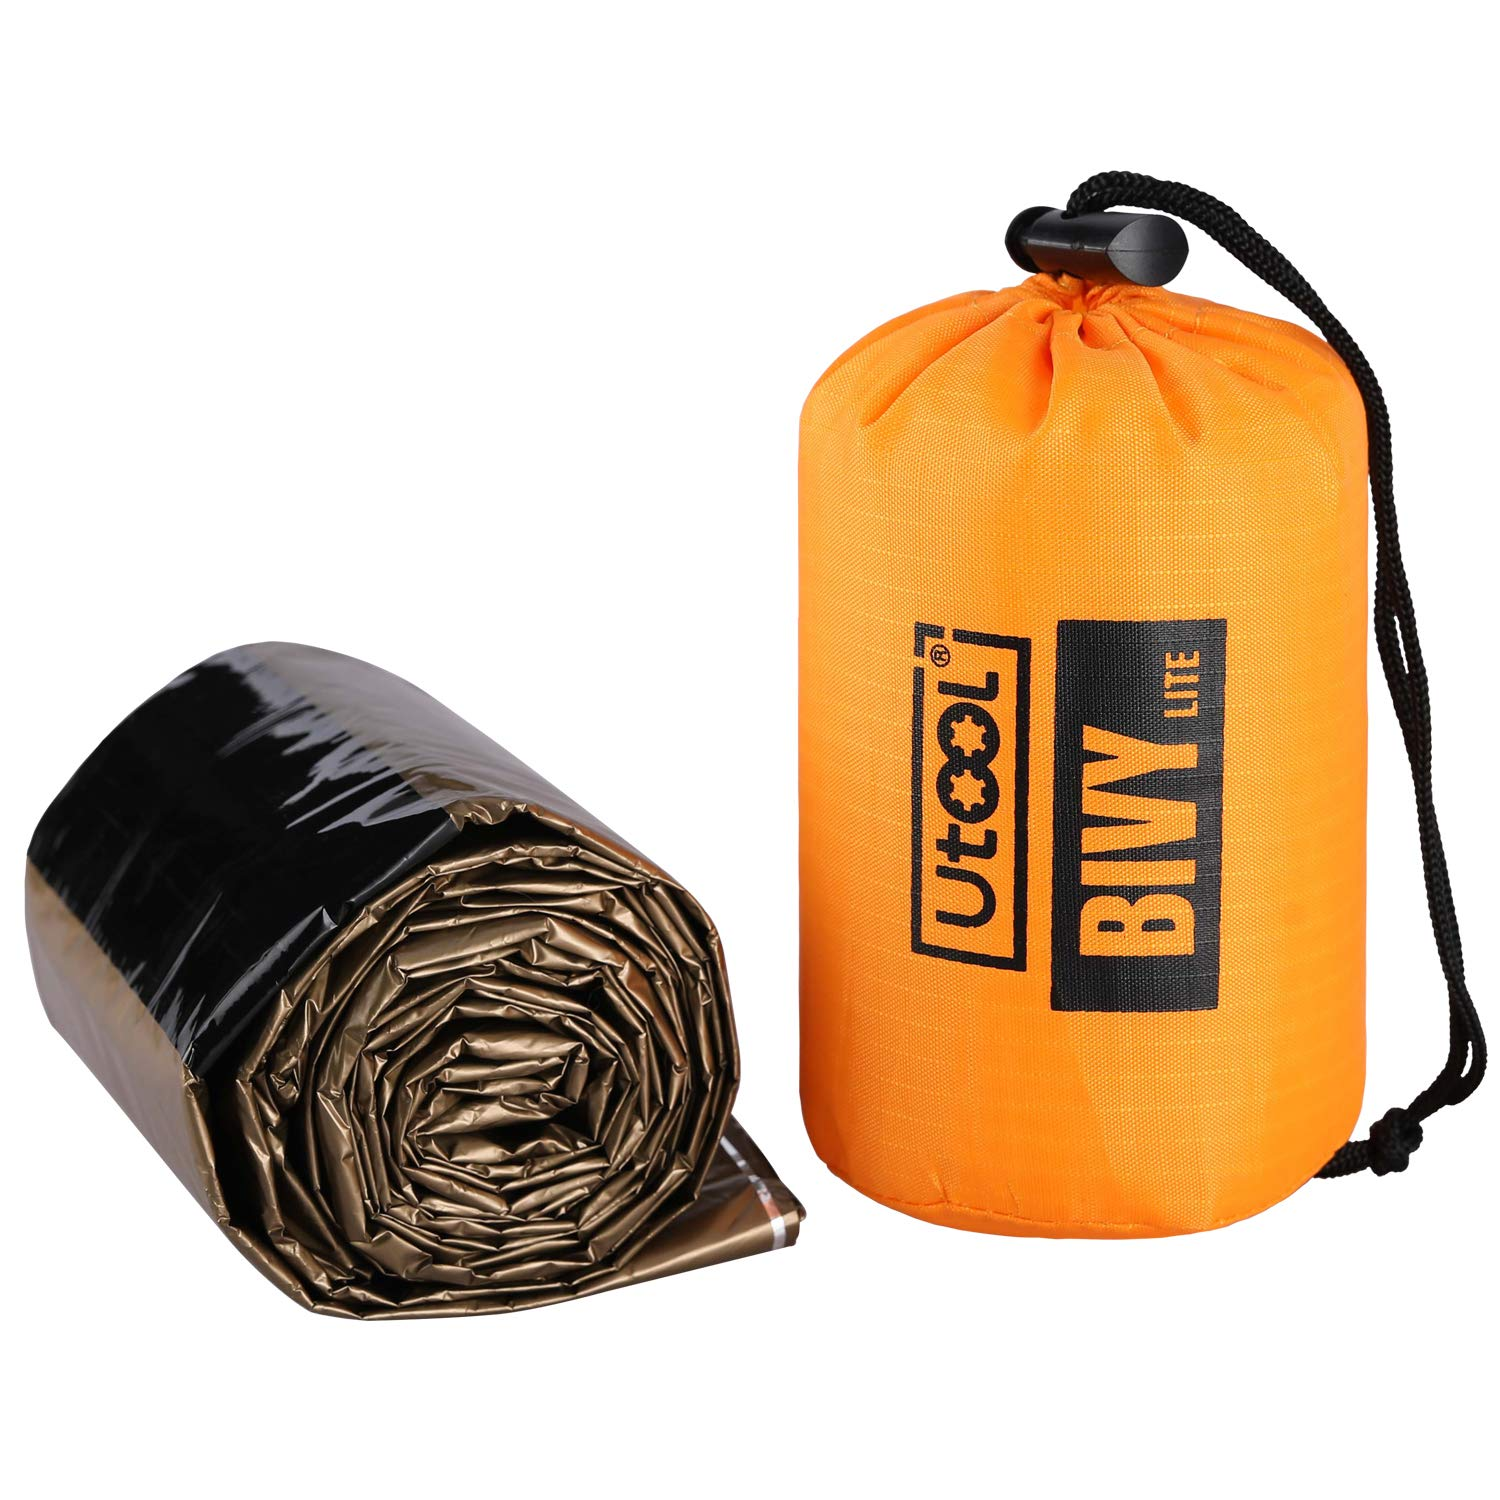 UTOOL Ultralight Emergency Sleeping Bag Waterproof Bivy Sack Bivvy Cover with Heat Retention for Camping Hiking and Emergency Shelter etc